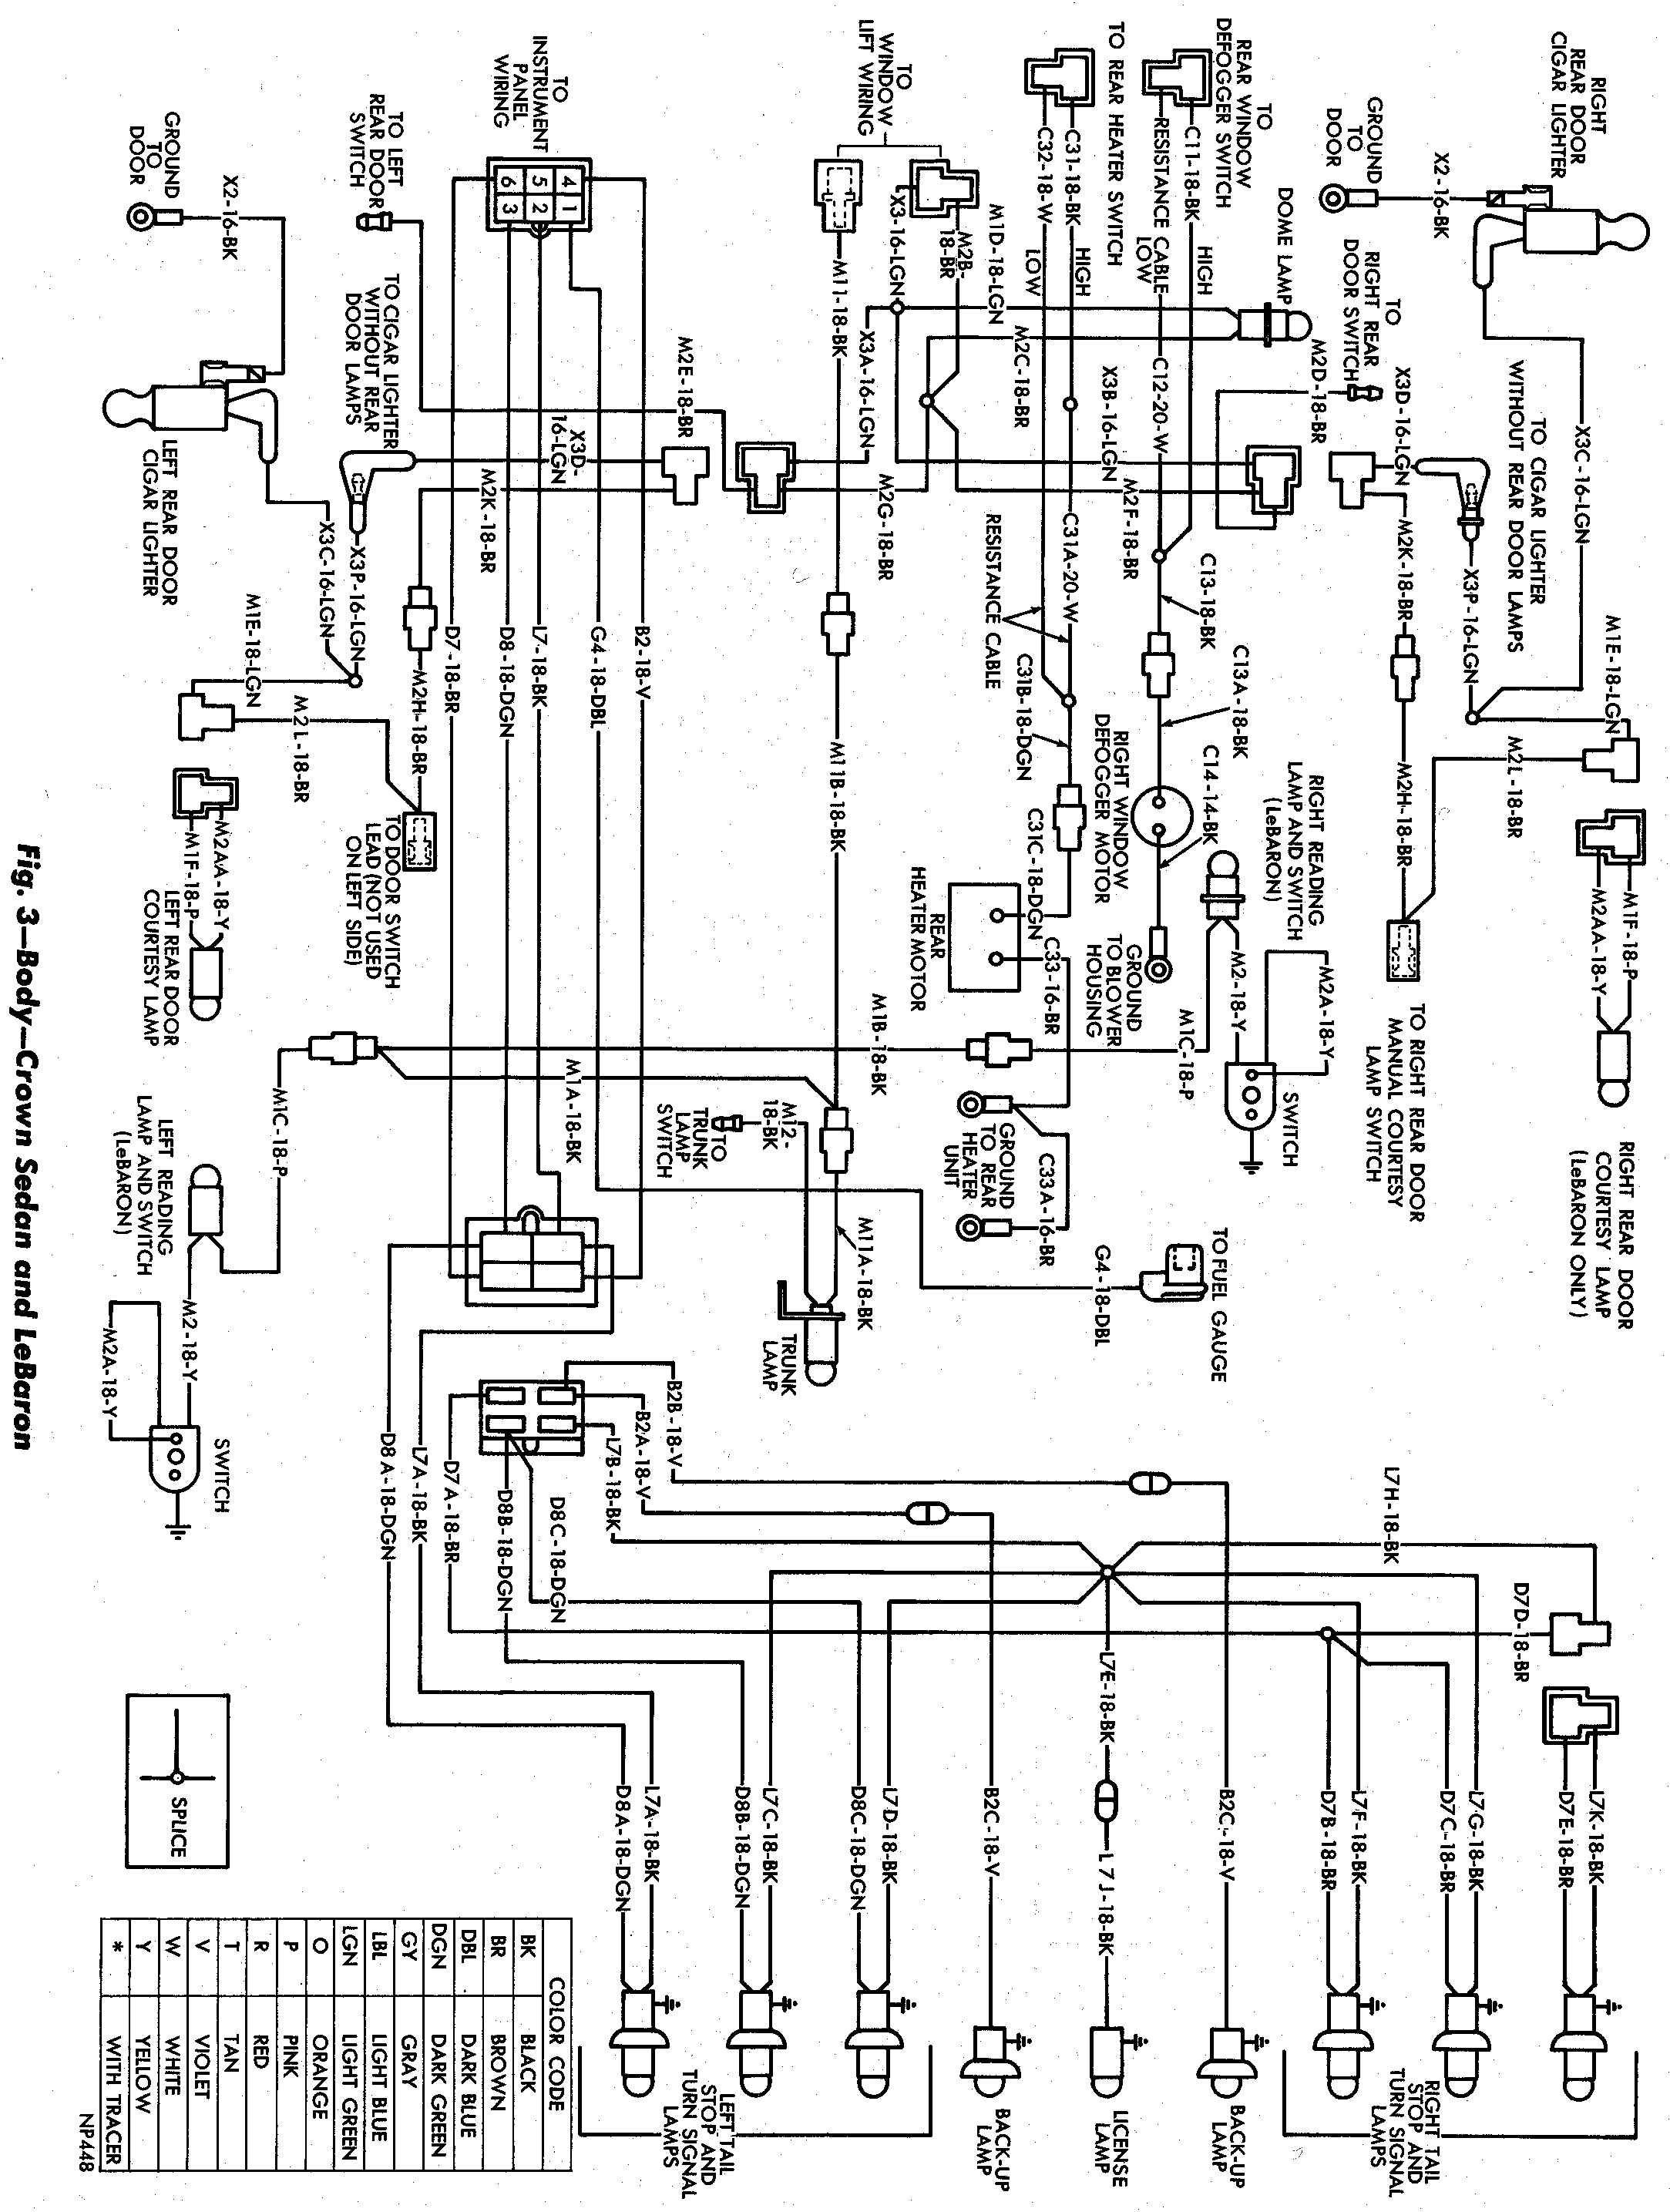 Wiring Diagram Further 1990 Dodge Dakota Fuse Box Diagram Additionally